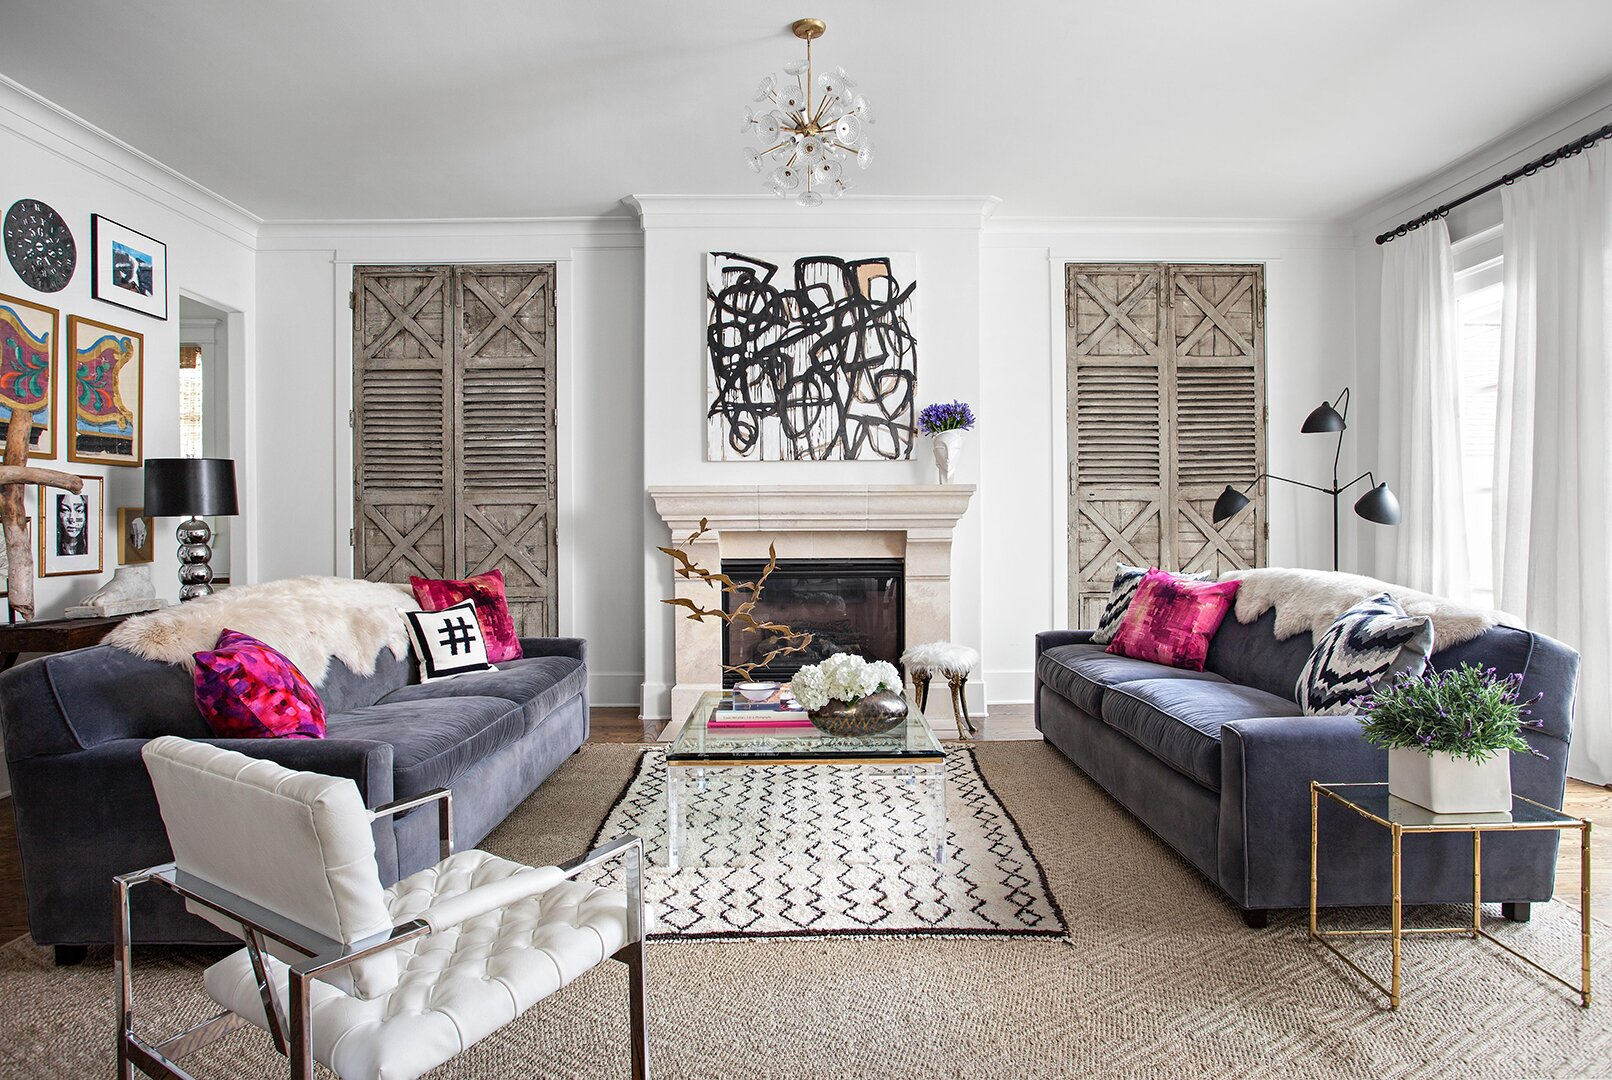 neutral toned living room with hot pink accent pillows and modern art painting